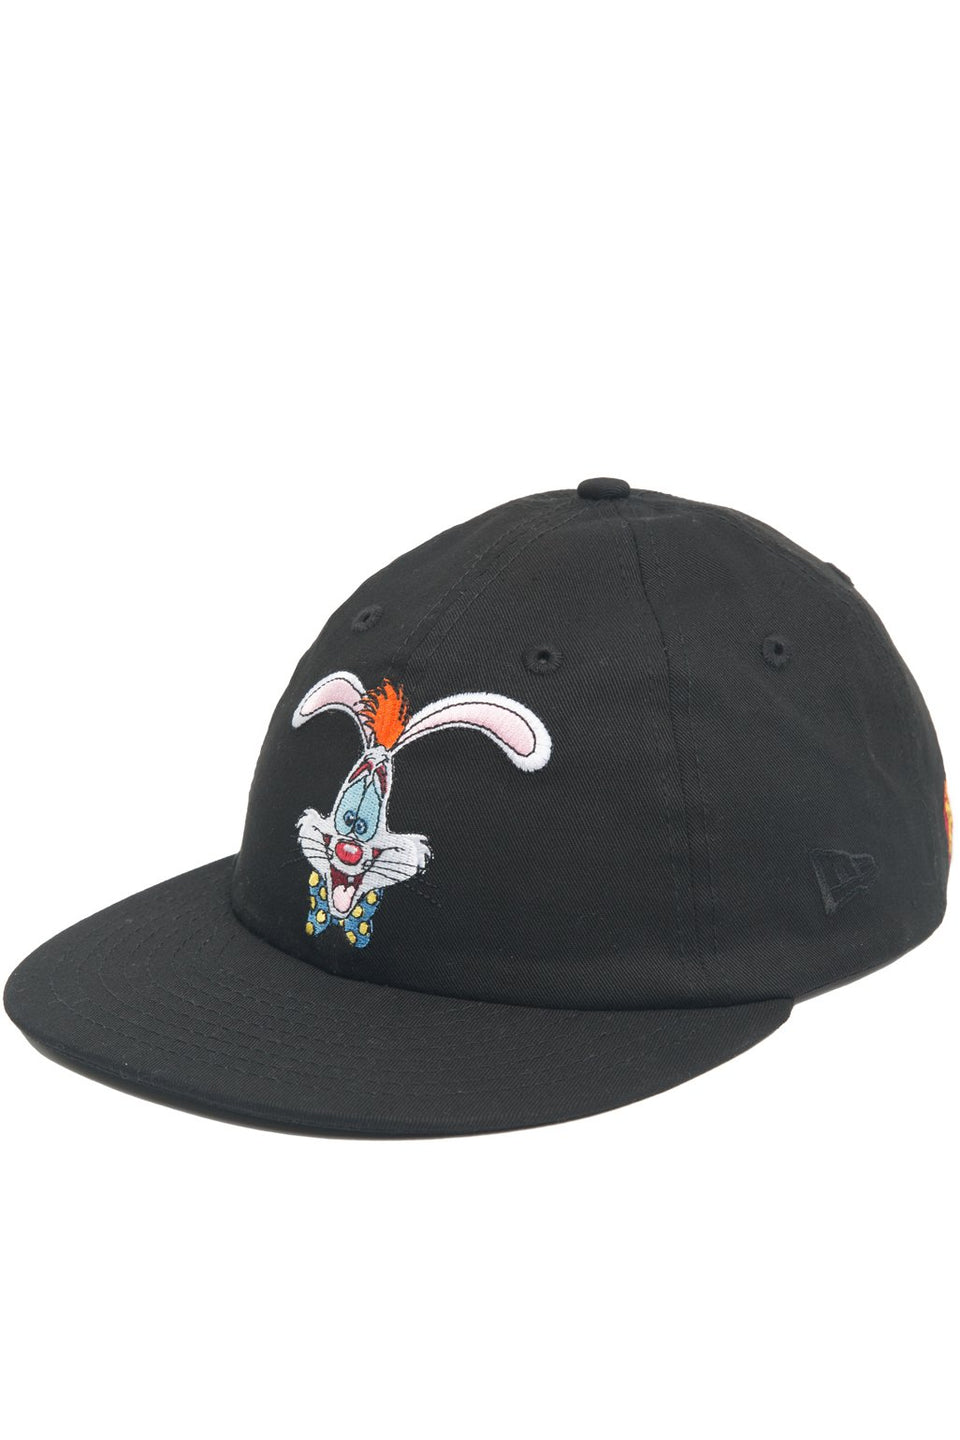 Roger Rabbit Head Snapback